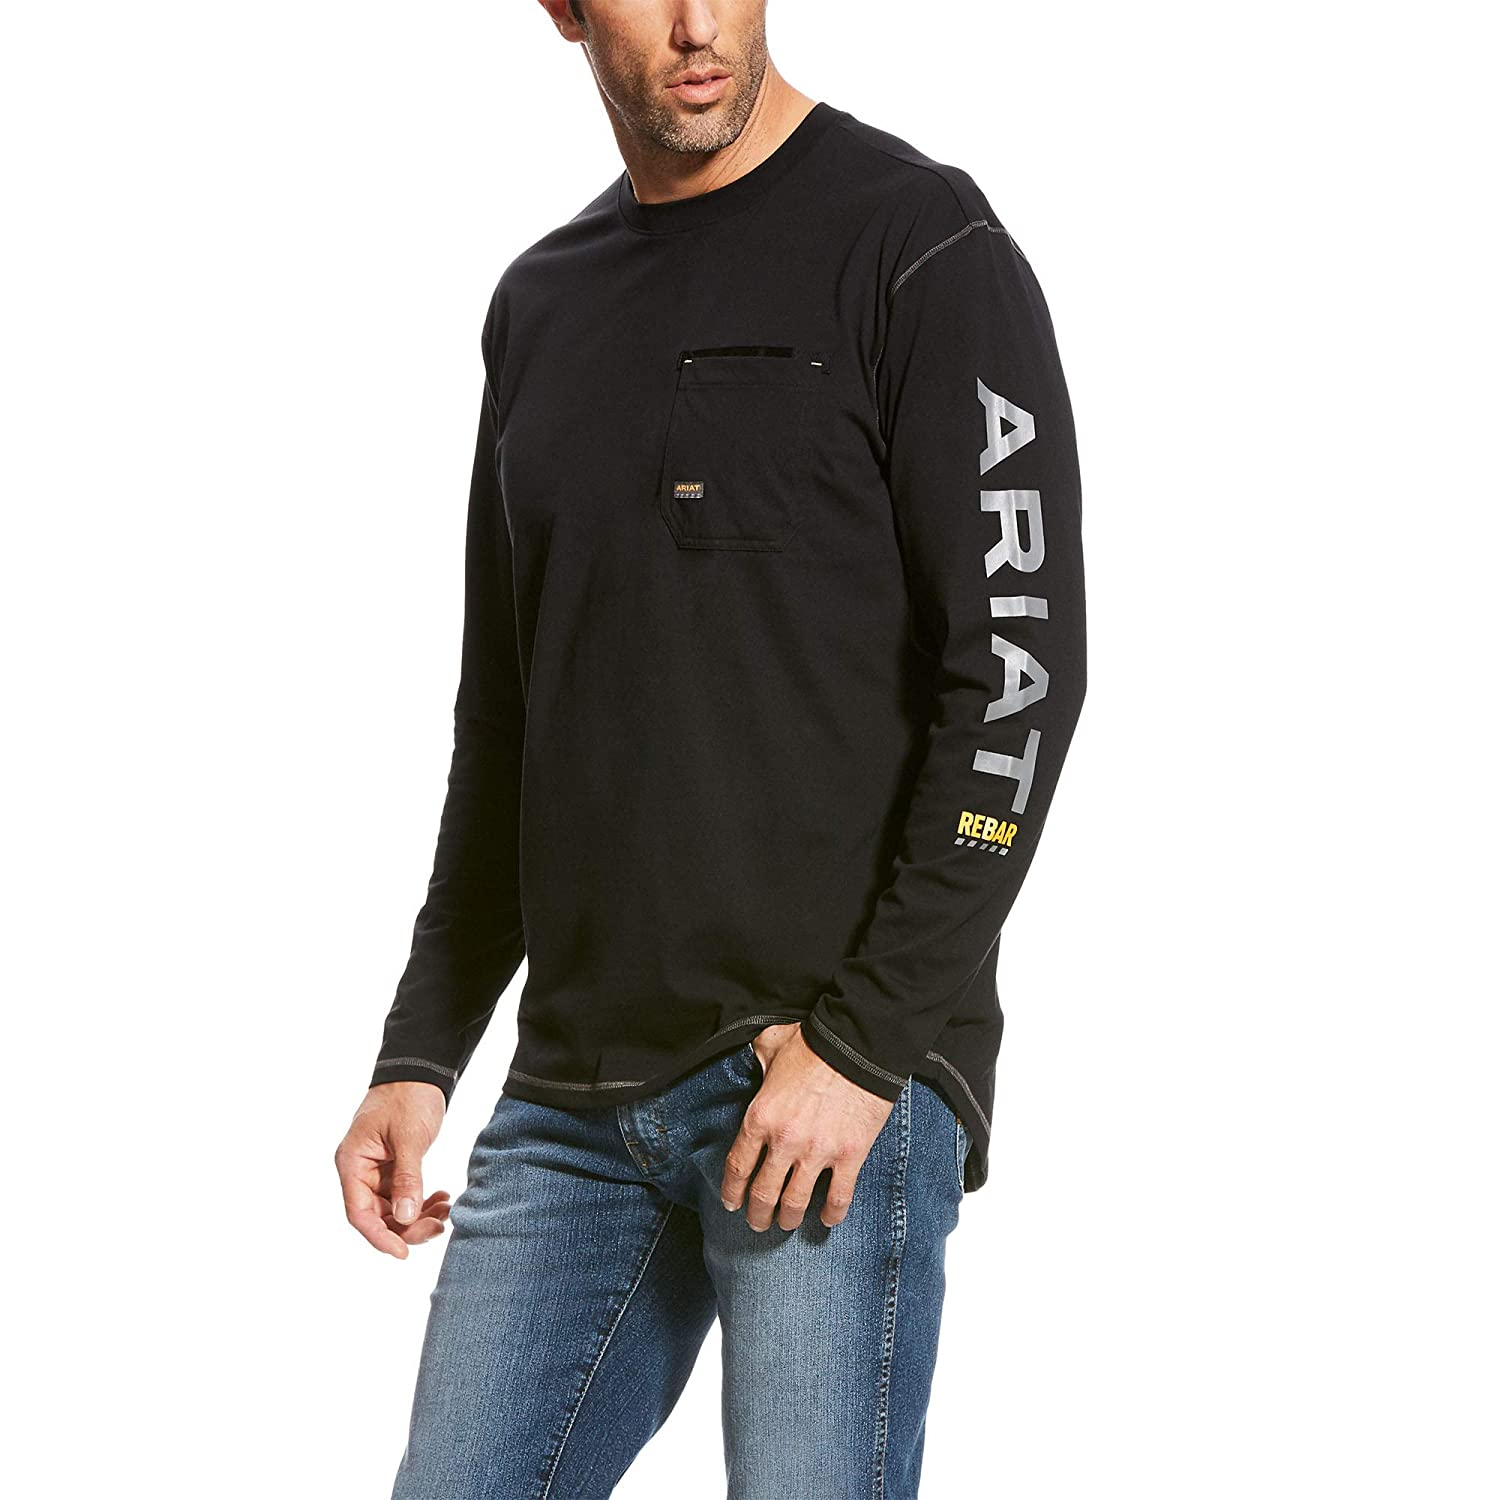 ARIAT Mens Rebar Logo Long Sleeve Crewwork Utility Tee Shirt